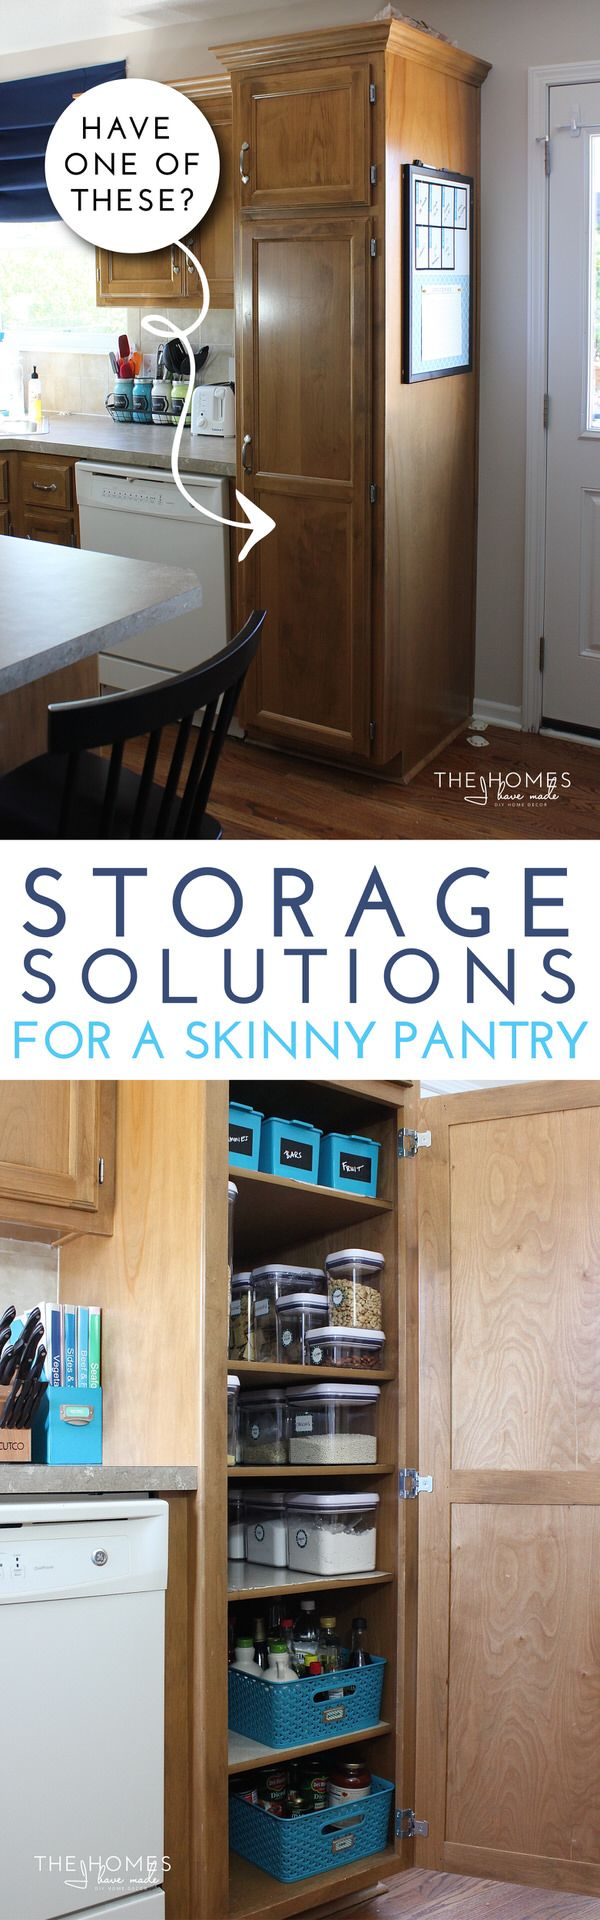 Uncategorized Kitchen Cabinet Organization best 20 kitchen cabinet organization ideas on pinterest organize this storage solutions for a skinny pantry